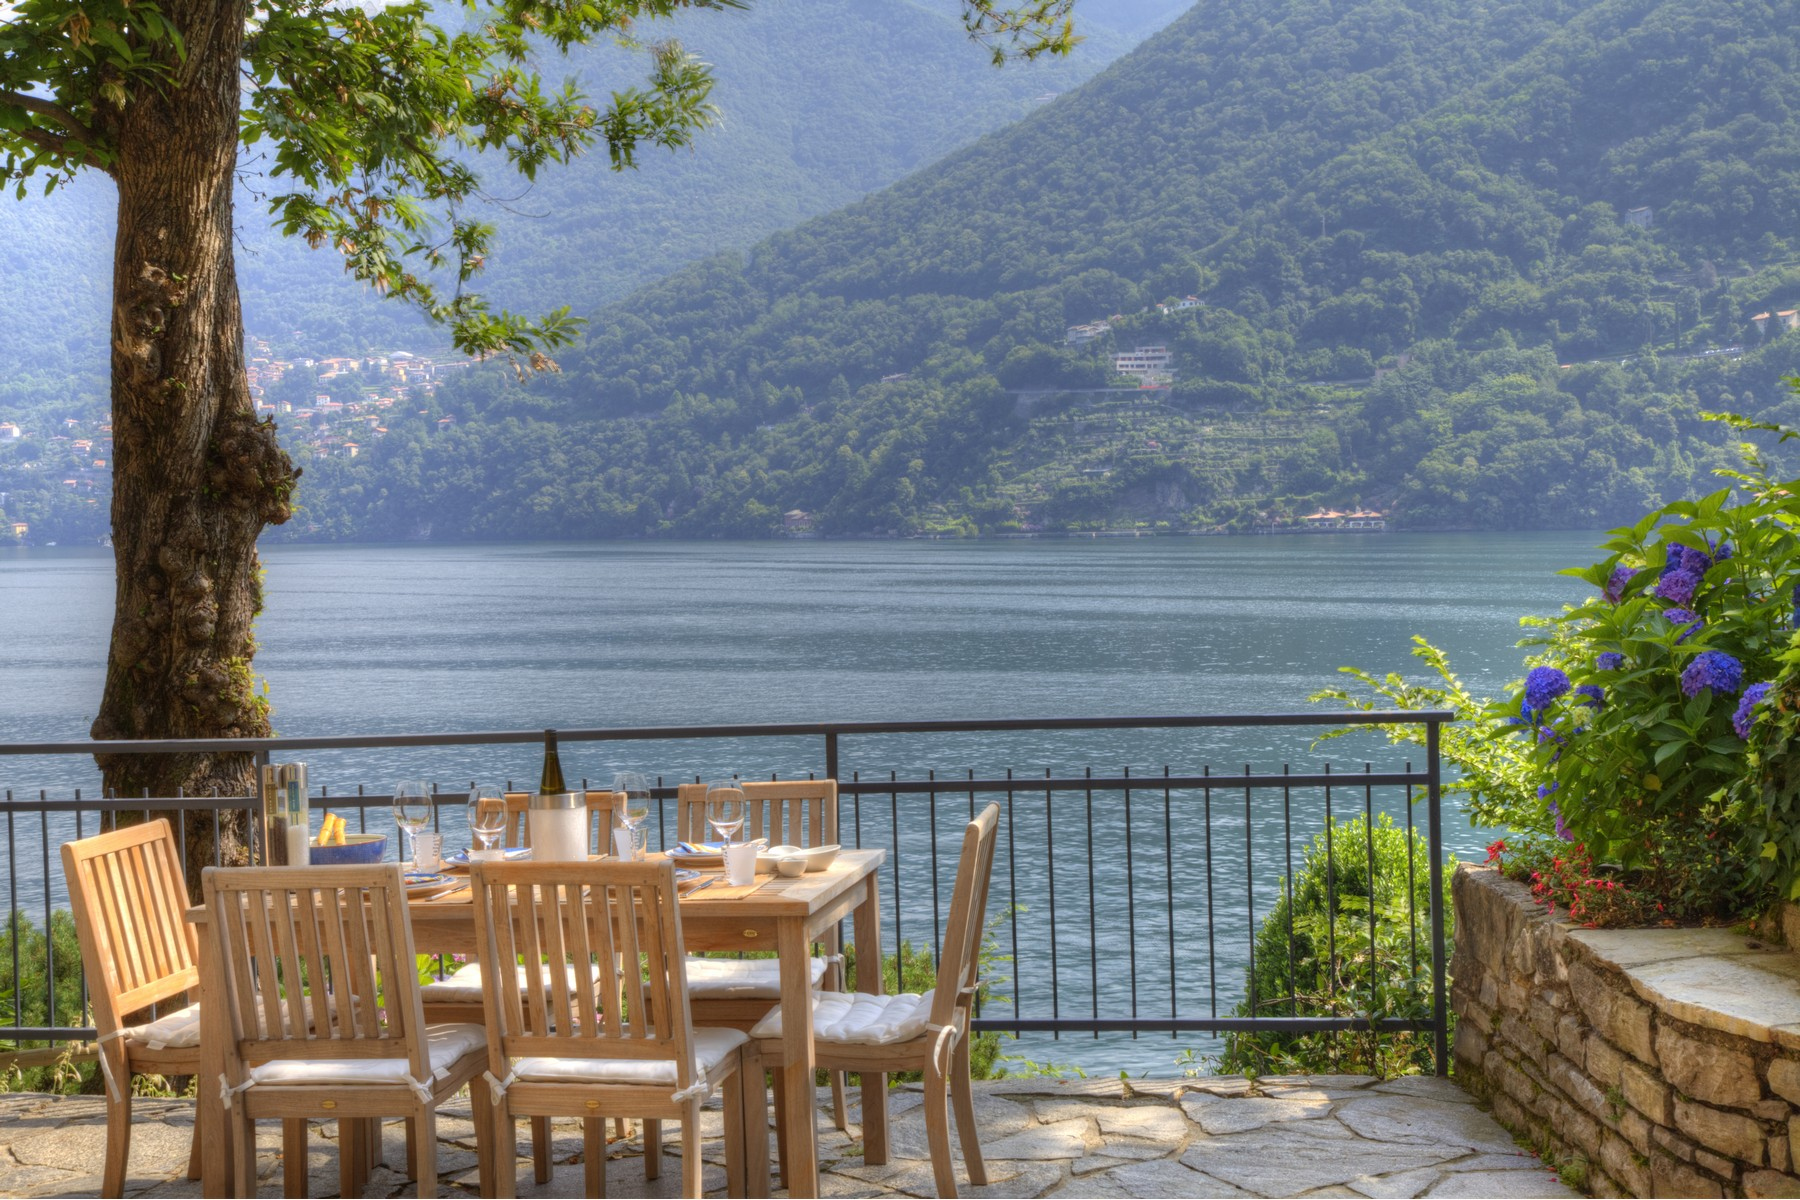 Property for Sale at Fantastic independent villa of the 70s Laglio, Como Italy